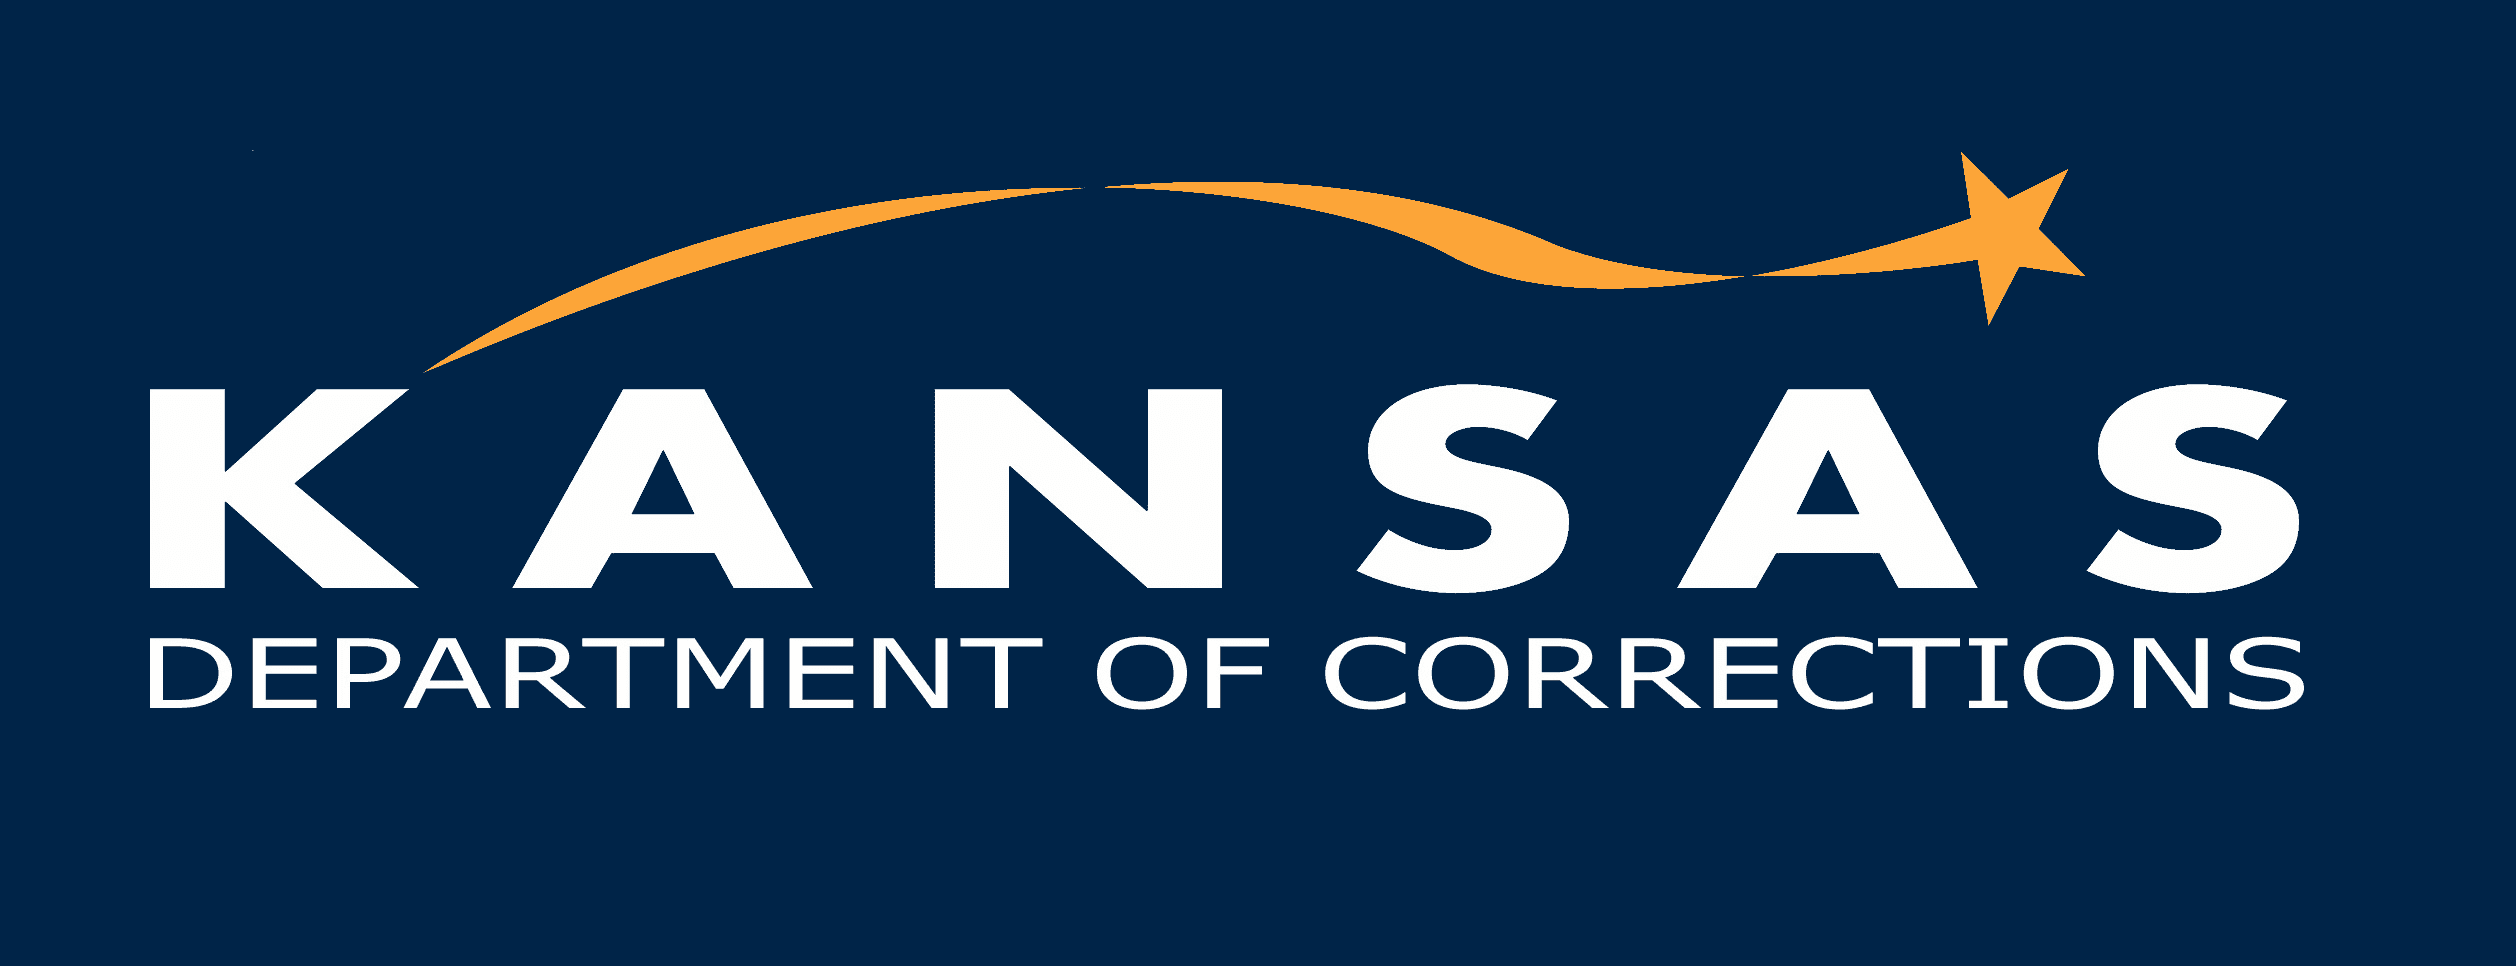 Kansas Department of Corrections